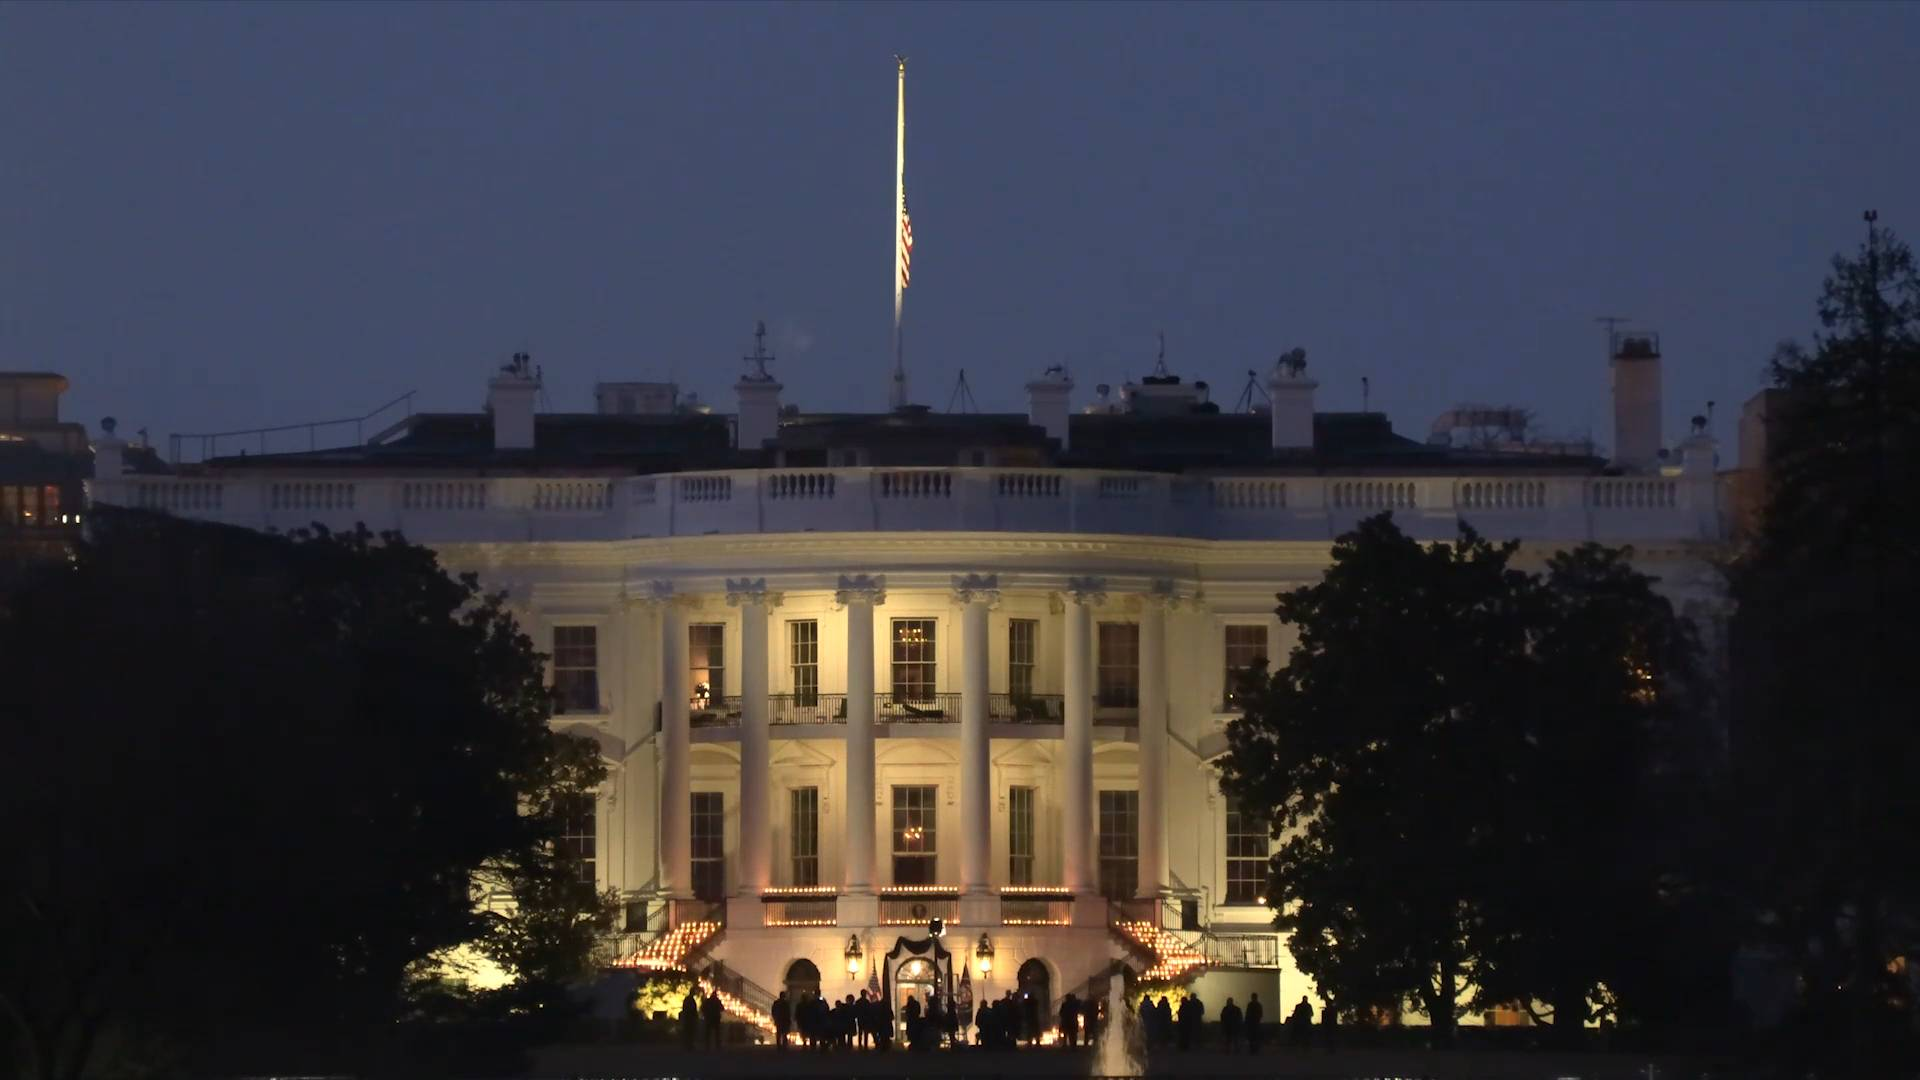 GLOBALink | Candles lit at White House to honor half a million COVID-19 deaths in U.S.